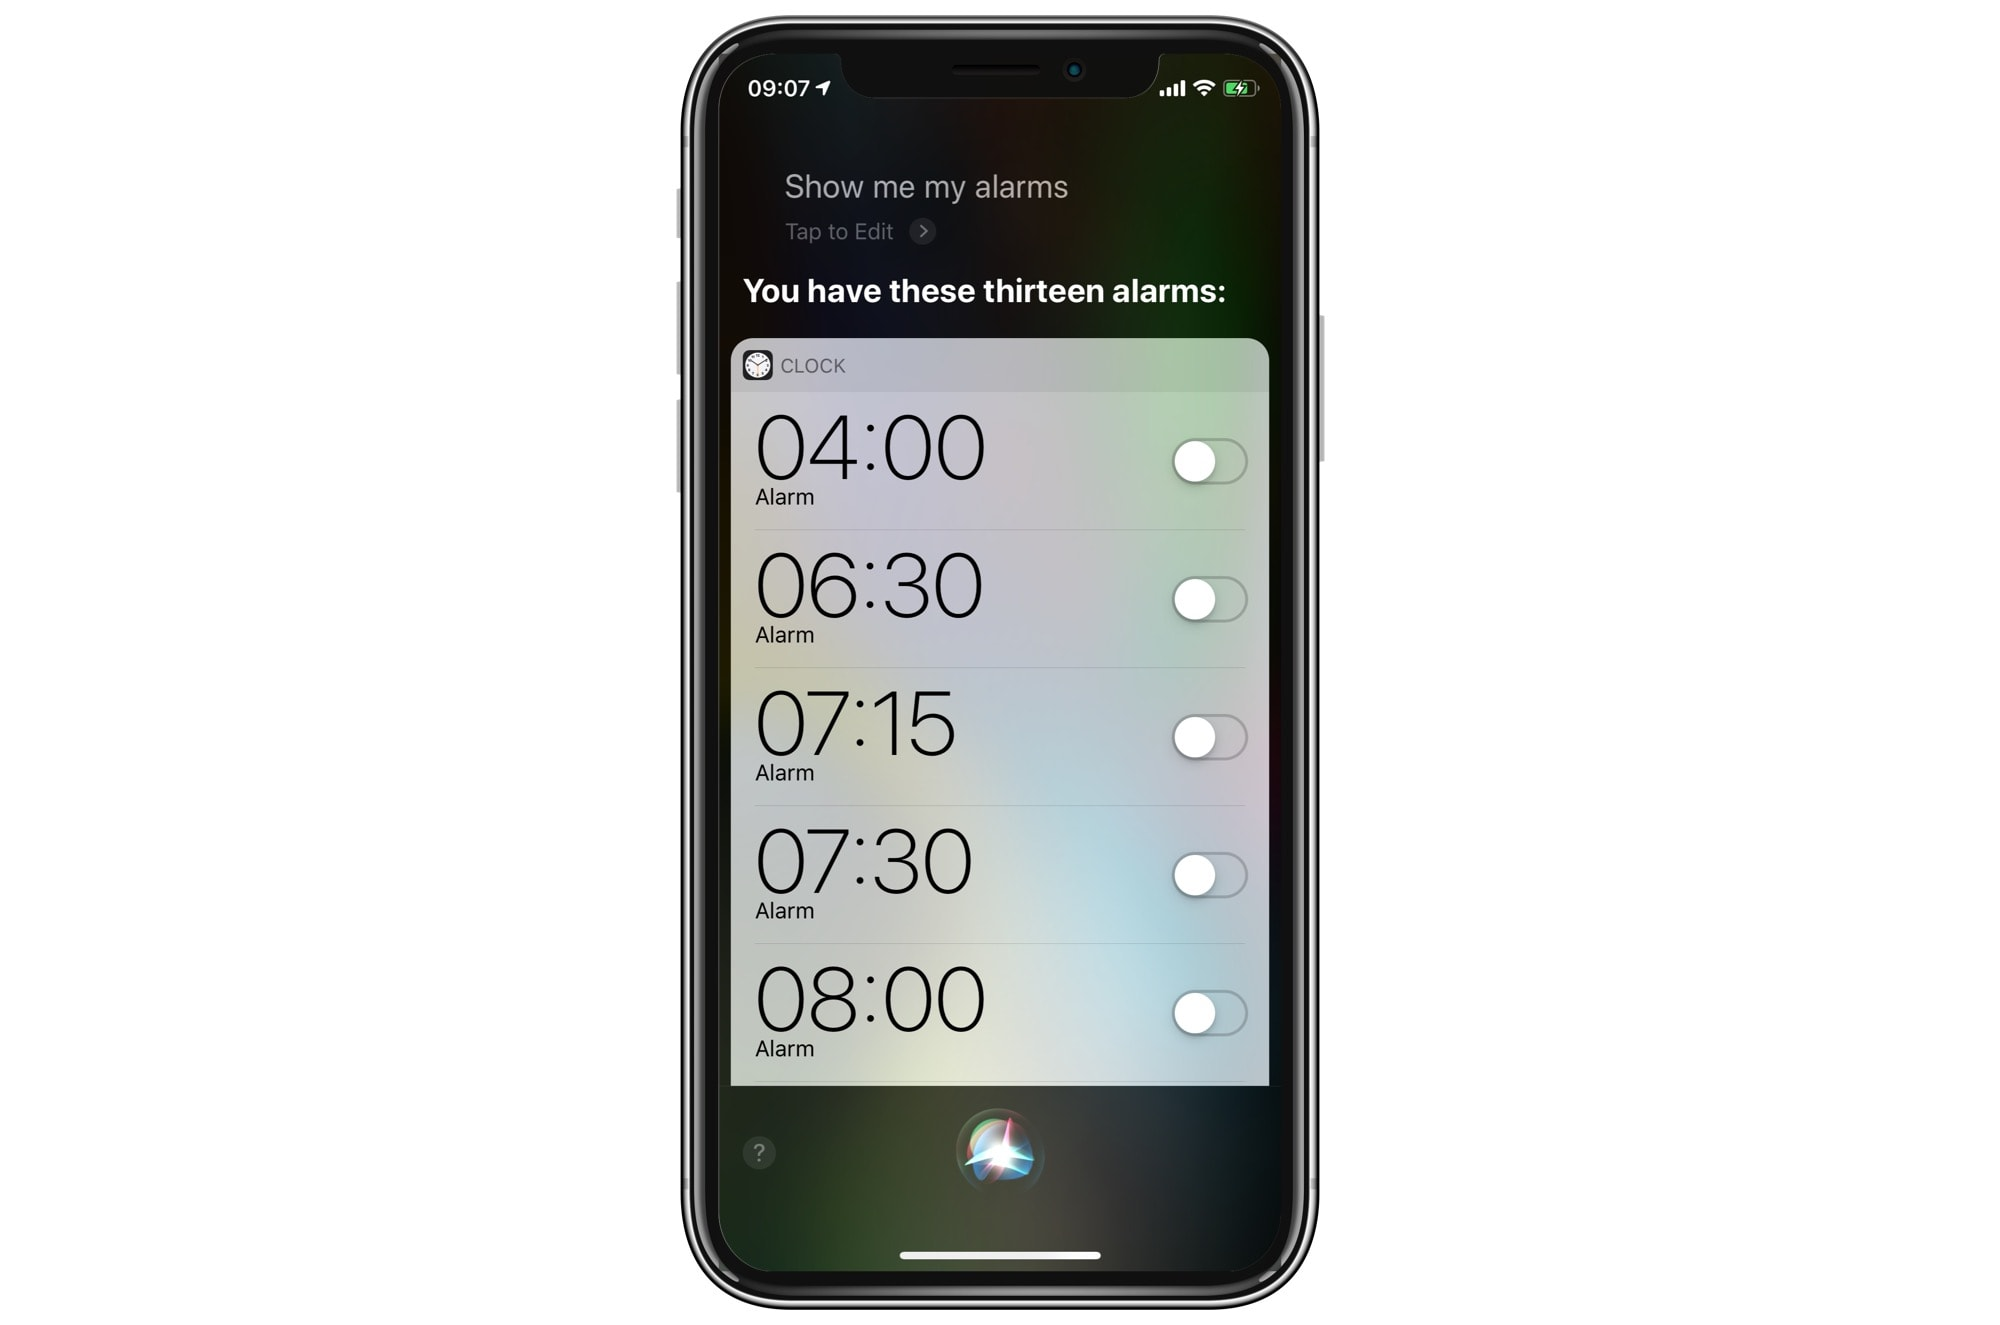 Siri can show you all your alarms.